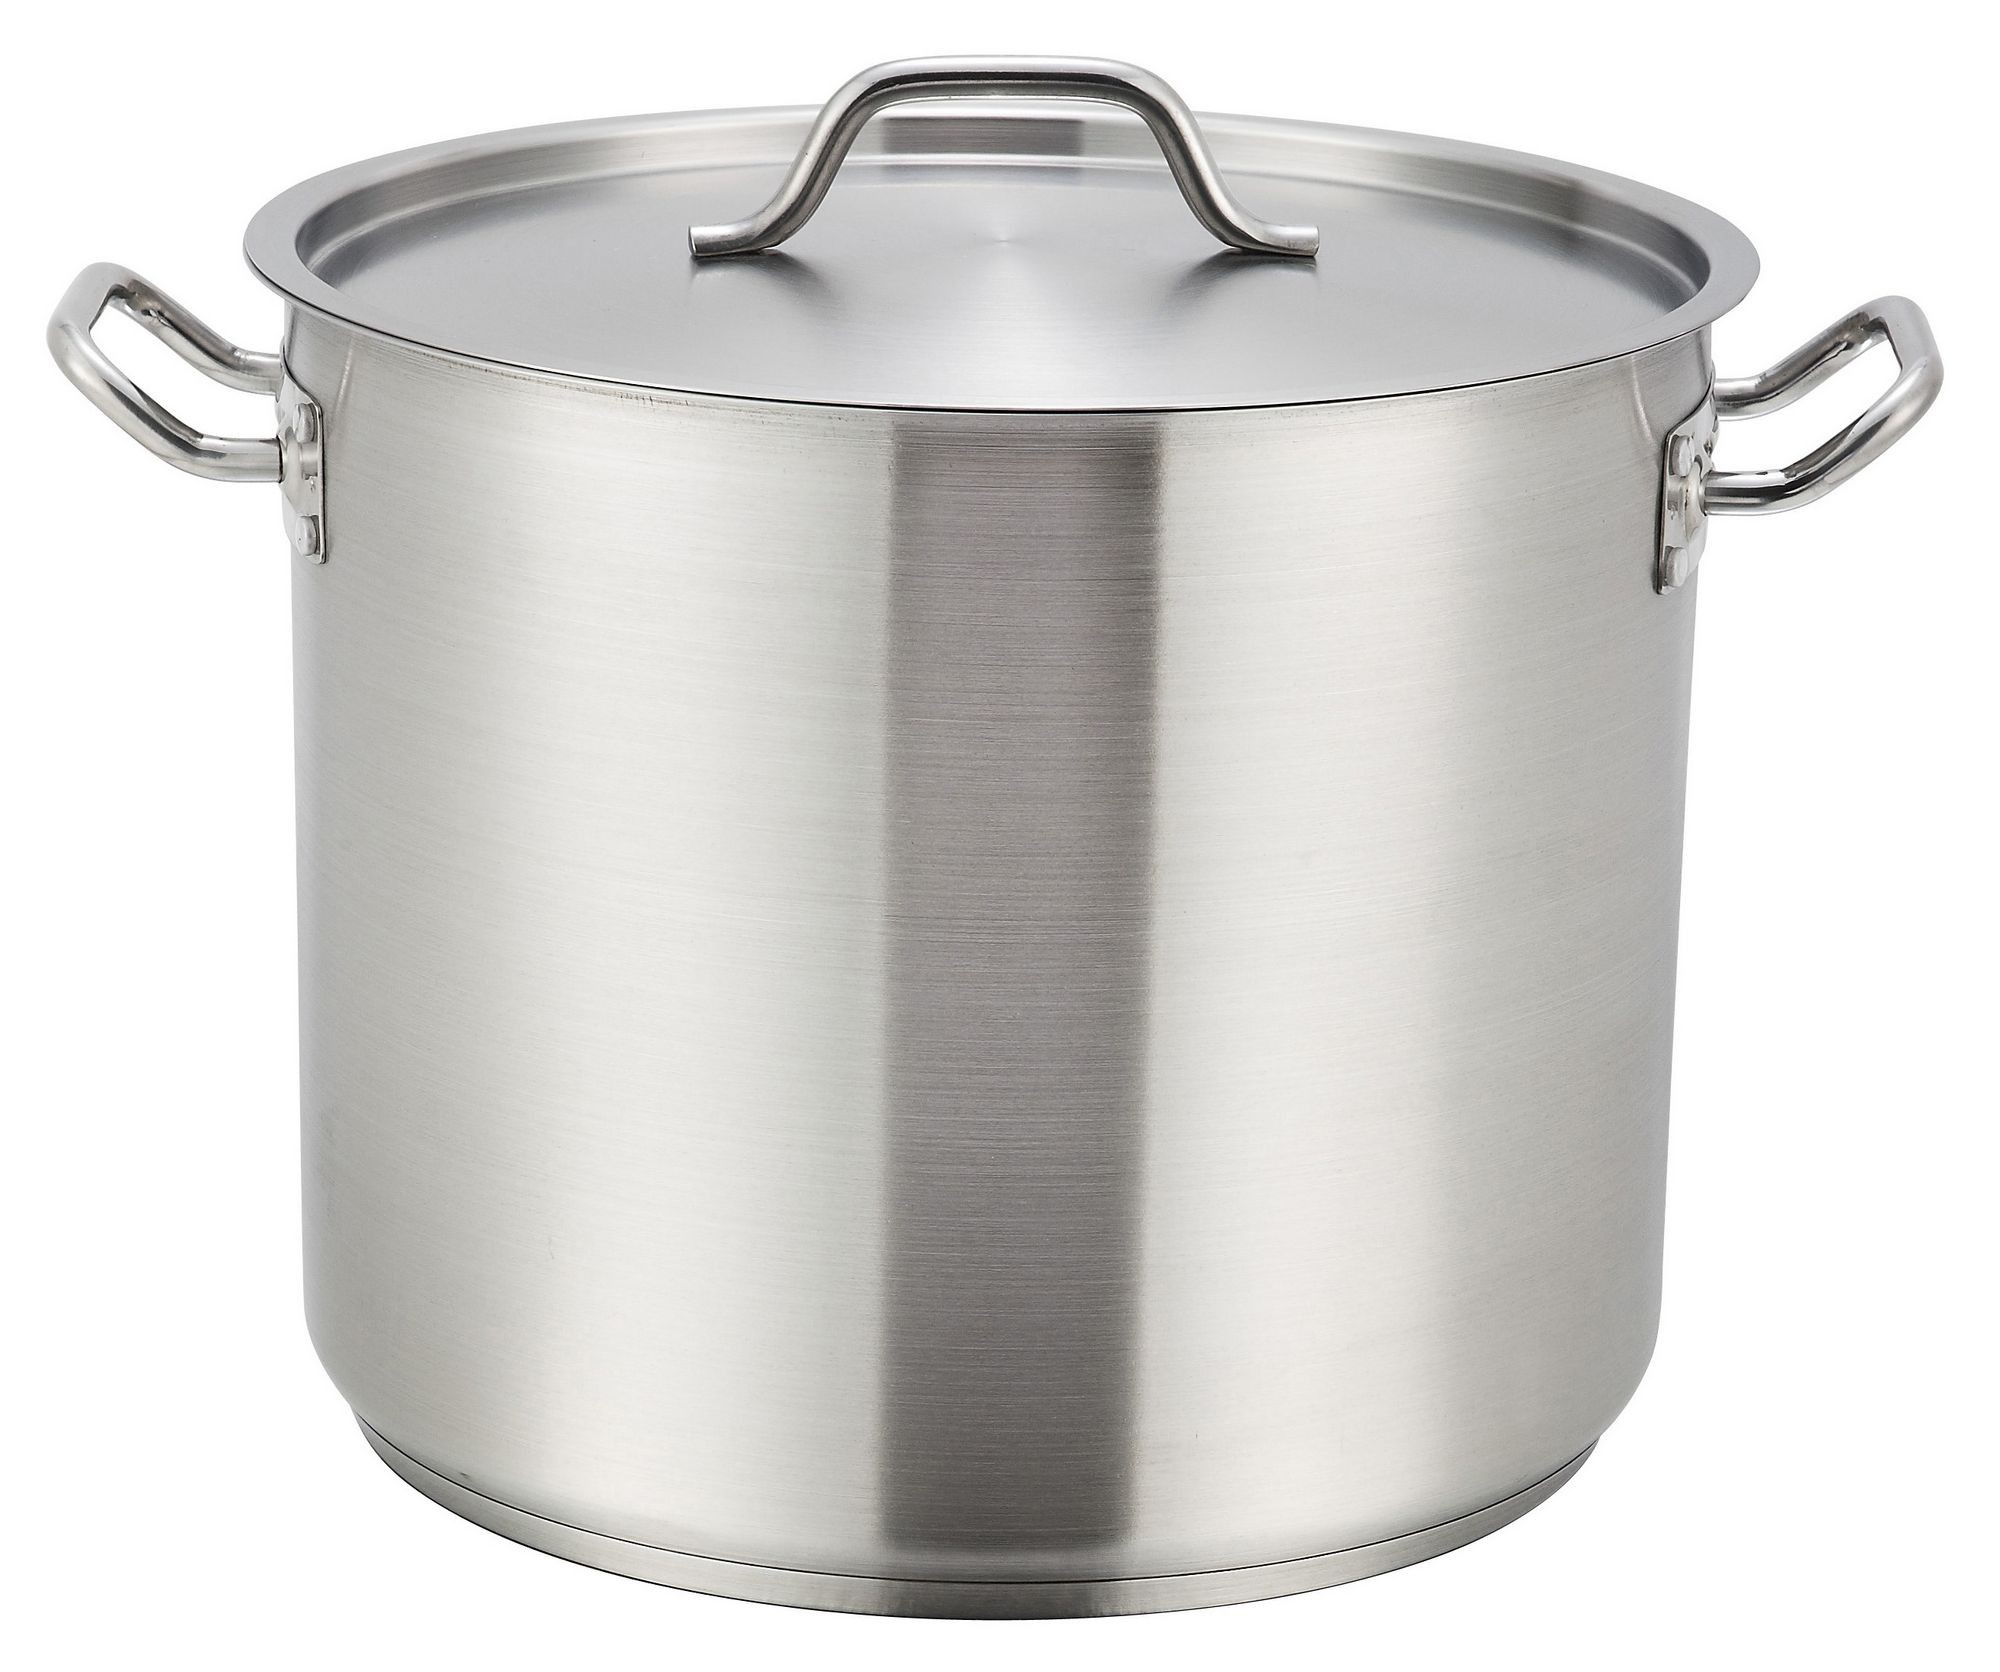 Stainless Steel 12-Qt Stock Pot